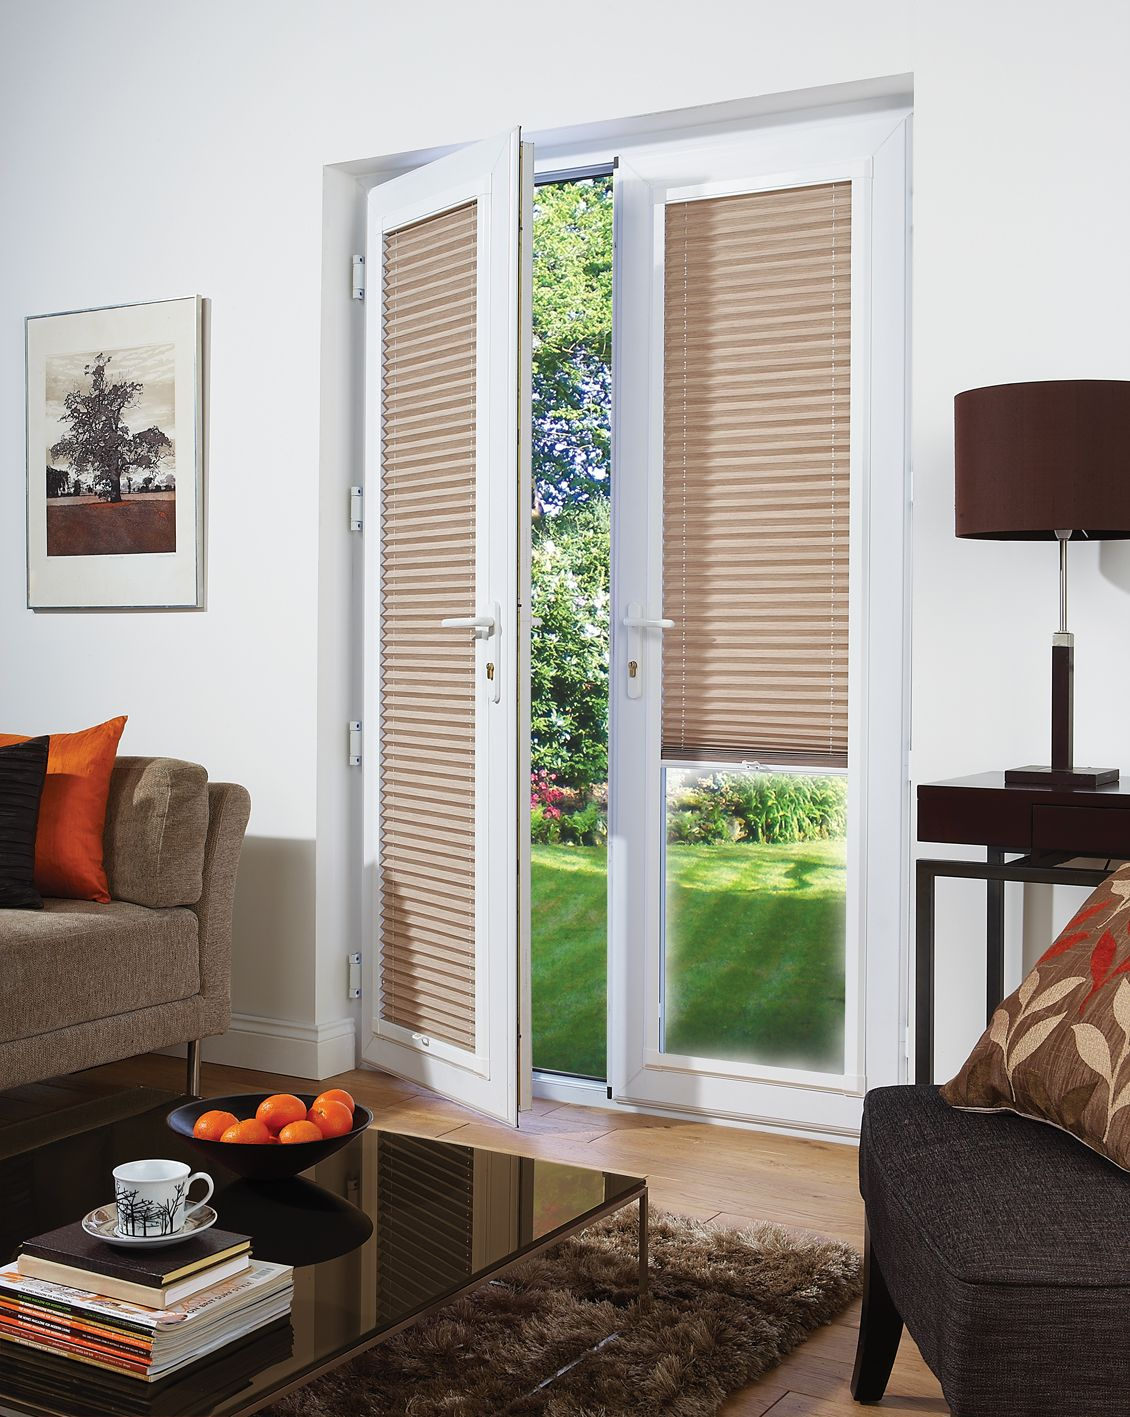 Ideas For Blinds For French Doors Part - 27: Magnetic Window Blinds As Important Elements Of Interior : Magnetic Blinds  For Doors With Windows. Magnetic Blinds For Doors With Windows.